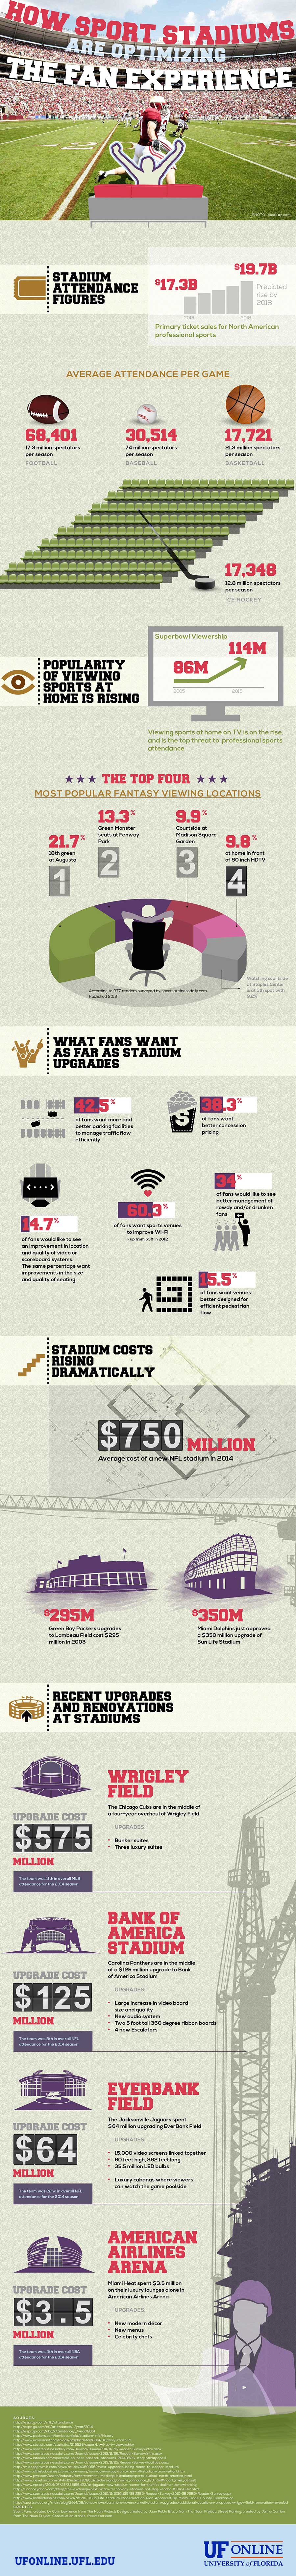 UF Online Infographic: How Sport Stadiums are Optimizing the Fan Experience